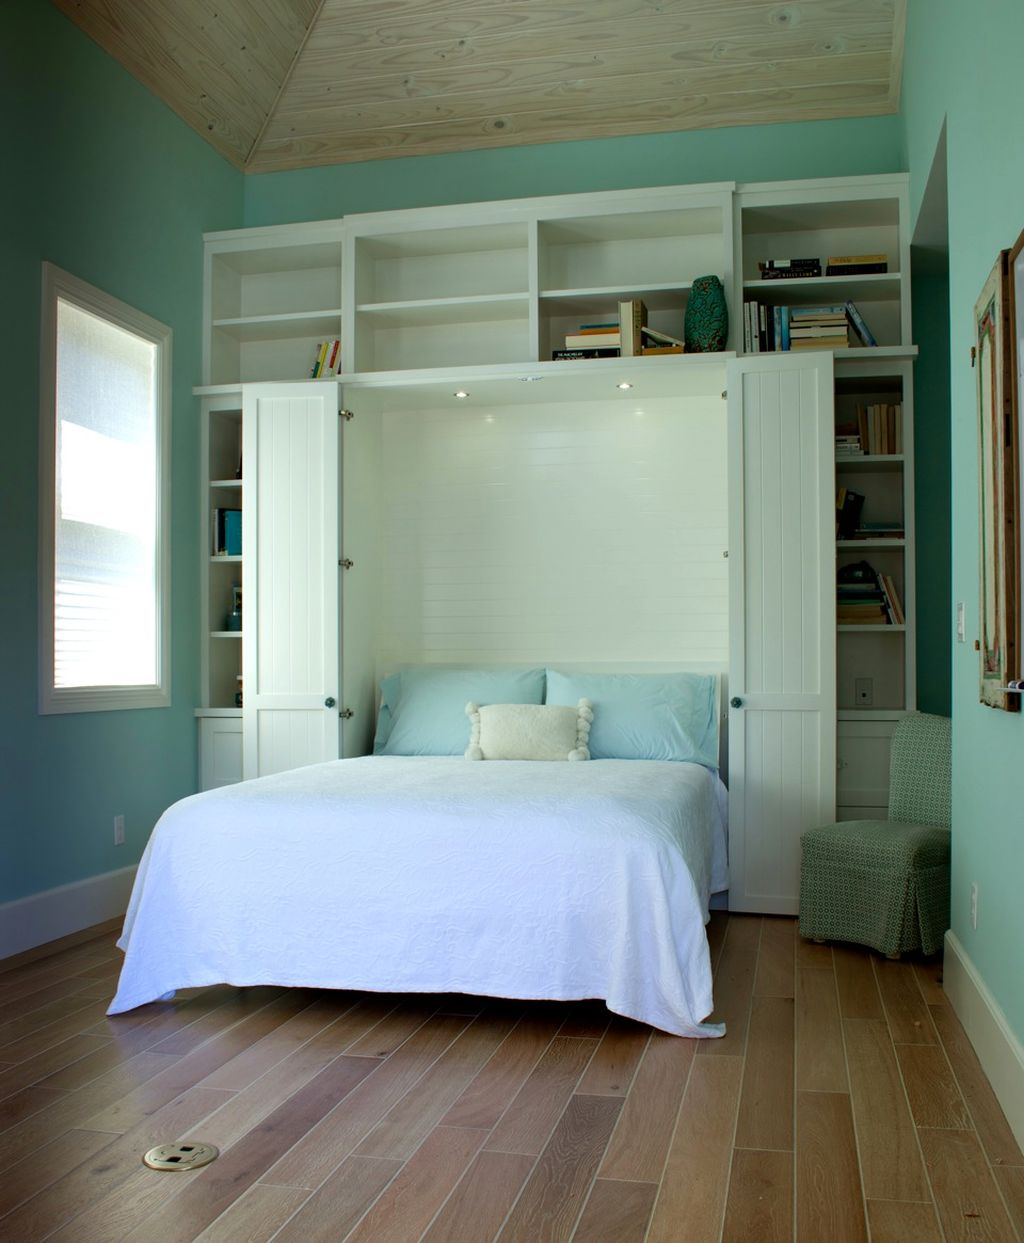 20 space saving murphy bed design ideas for small rooms for Small bedroom design 10x10